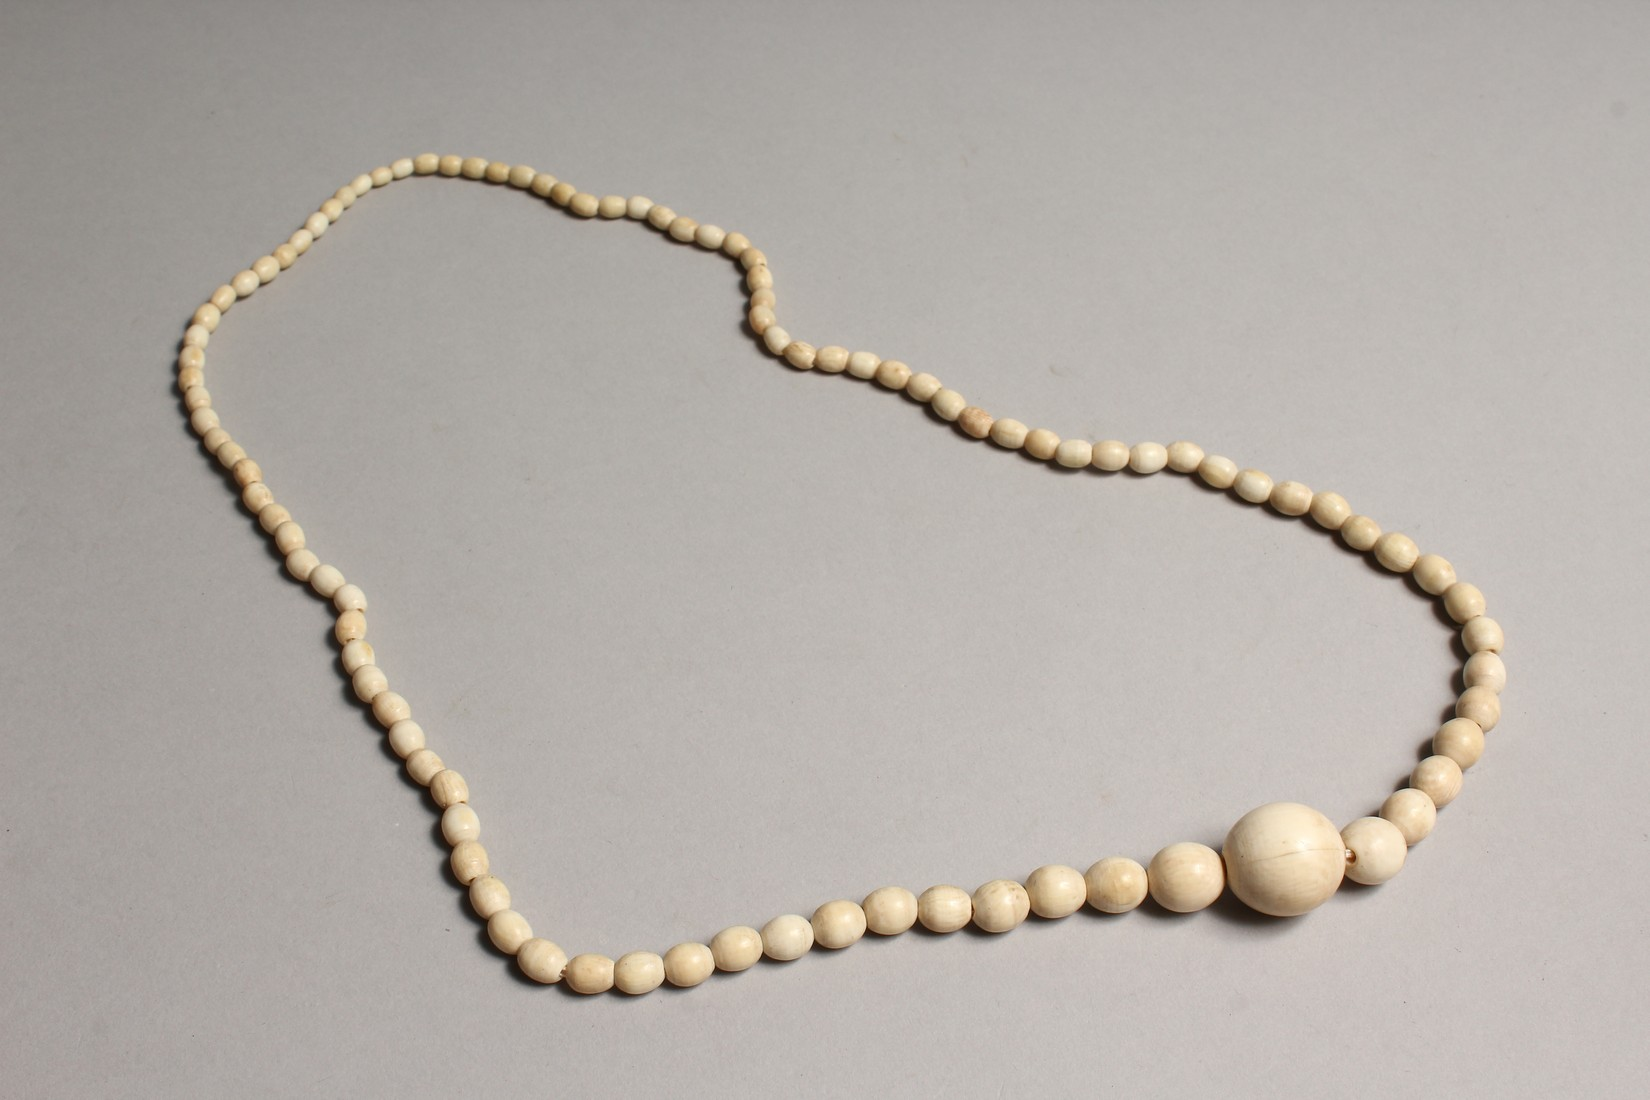 A GOOD GRADUATED IVORY BEAD NECKLACE on one hundred beads 29ins long - Image 2 of 3